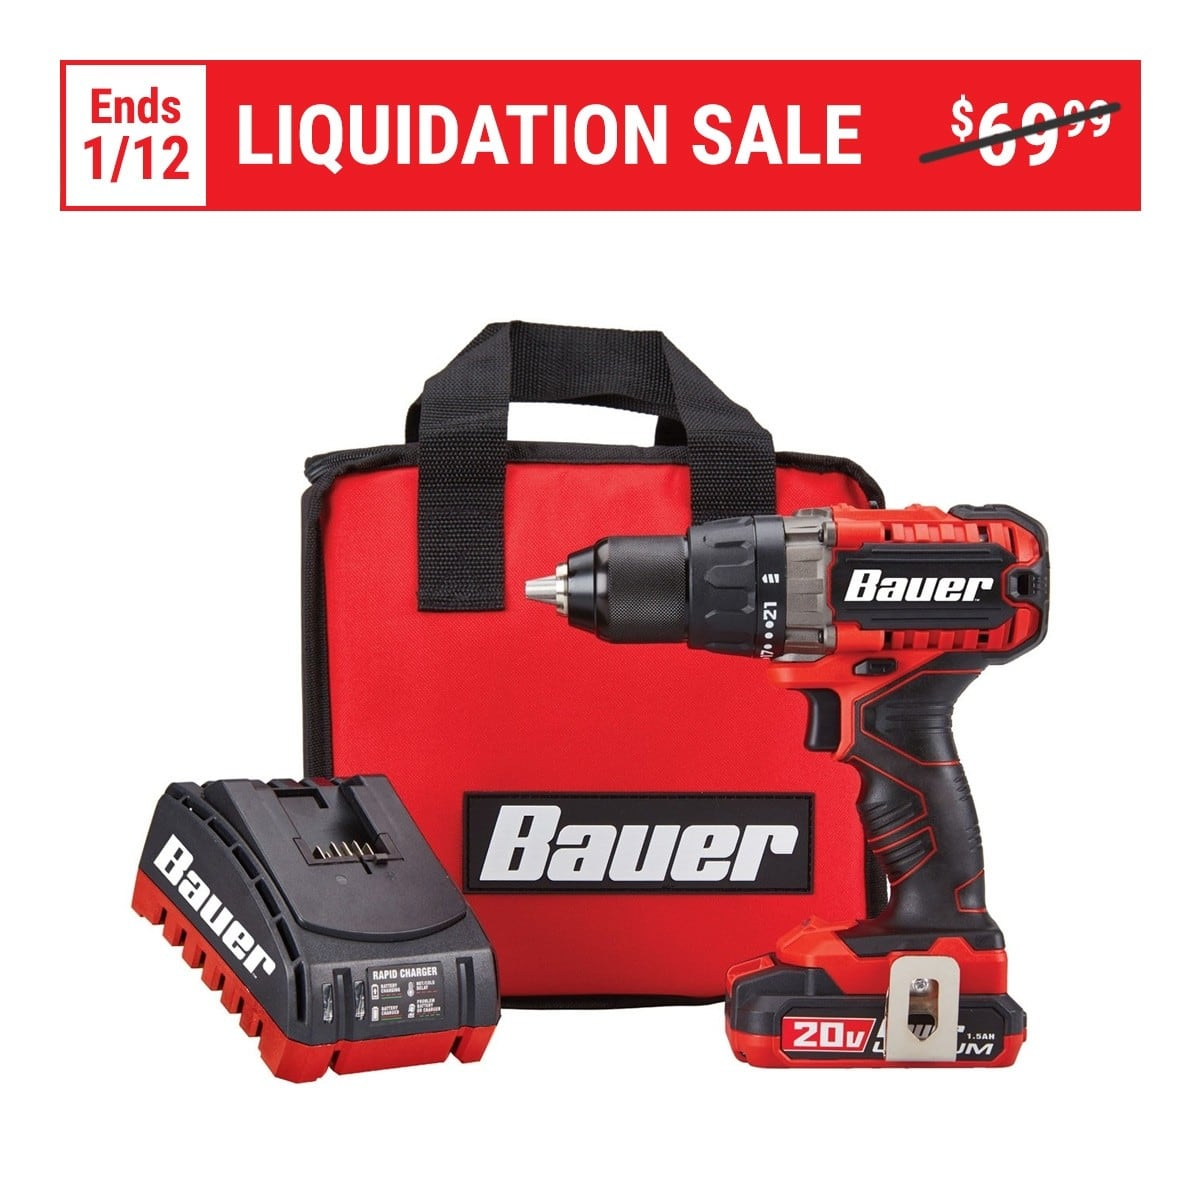 BAUER 20V Hypermax™ Lithium 1/2 In. Drill/Driver Kit $59.99